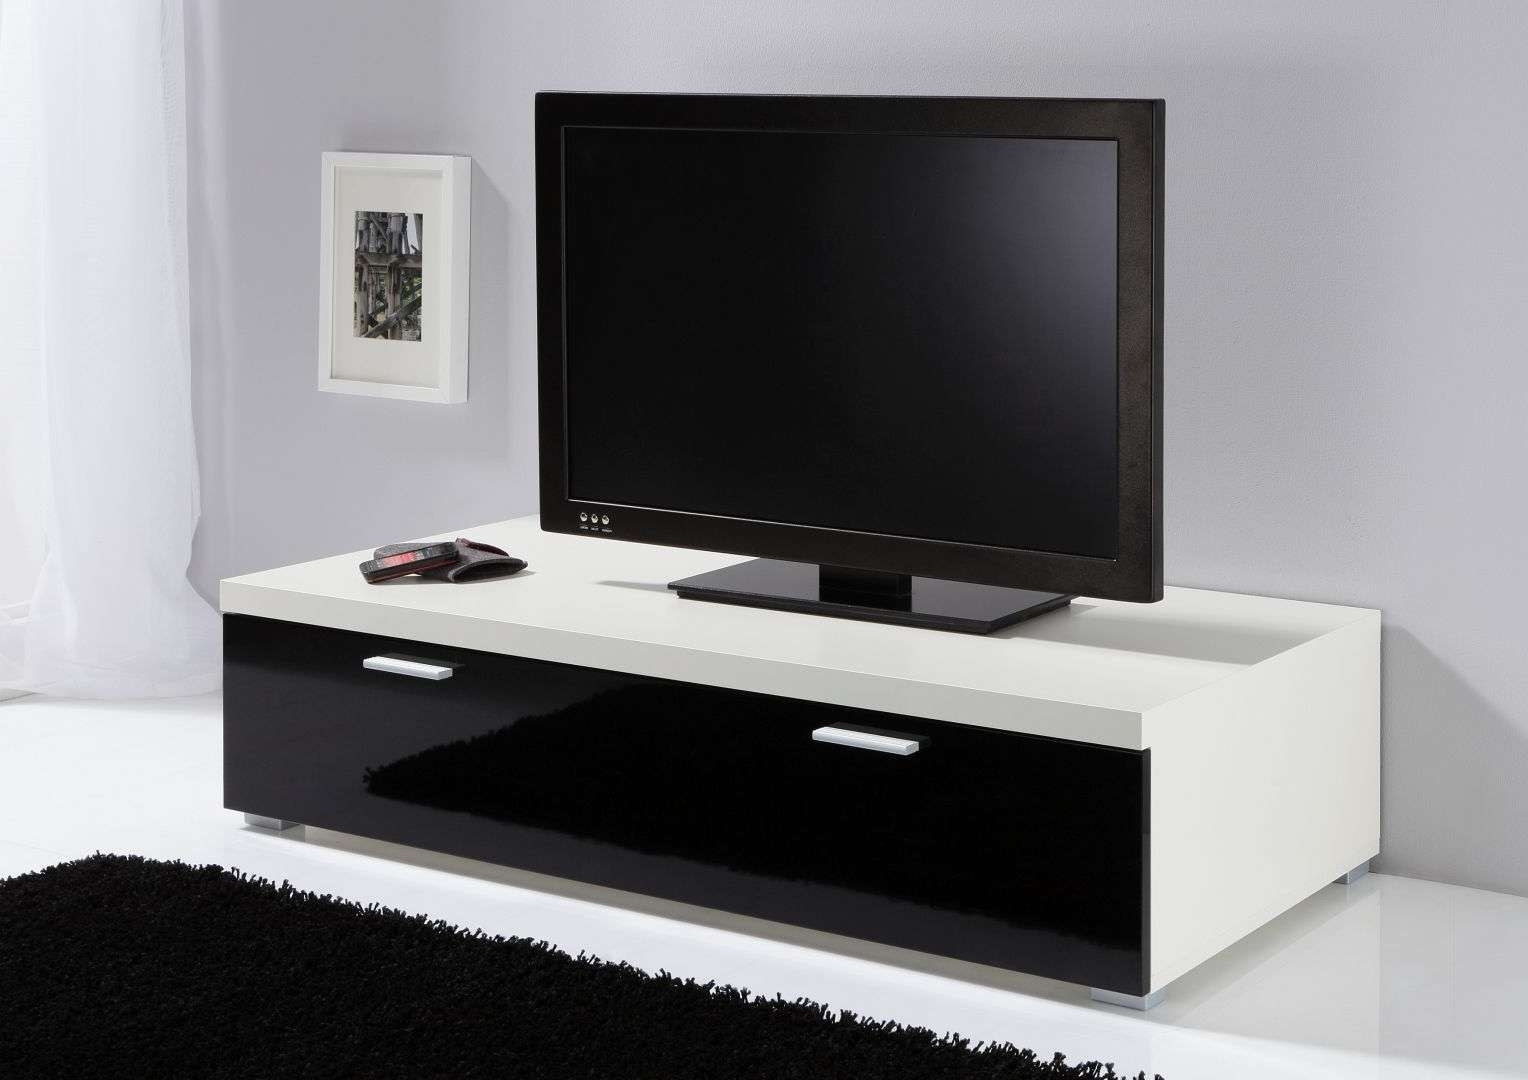 Modanuvo Low Tv Unit, Tv Cabinet, Tv Stand Off White & Black High Pertaining To Tv Cabinets Black High Gloss (View 15 of 20)